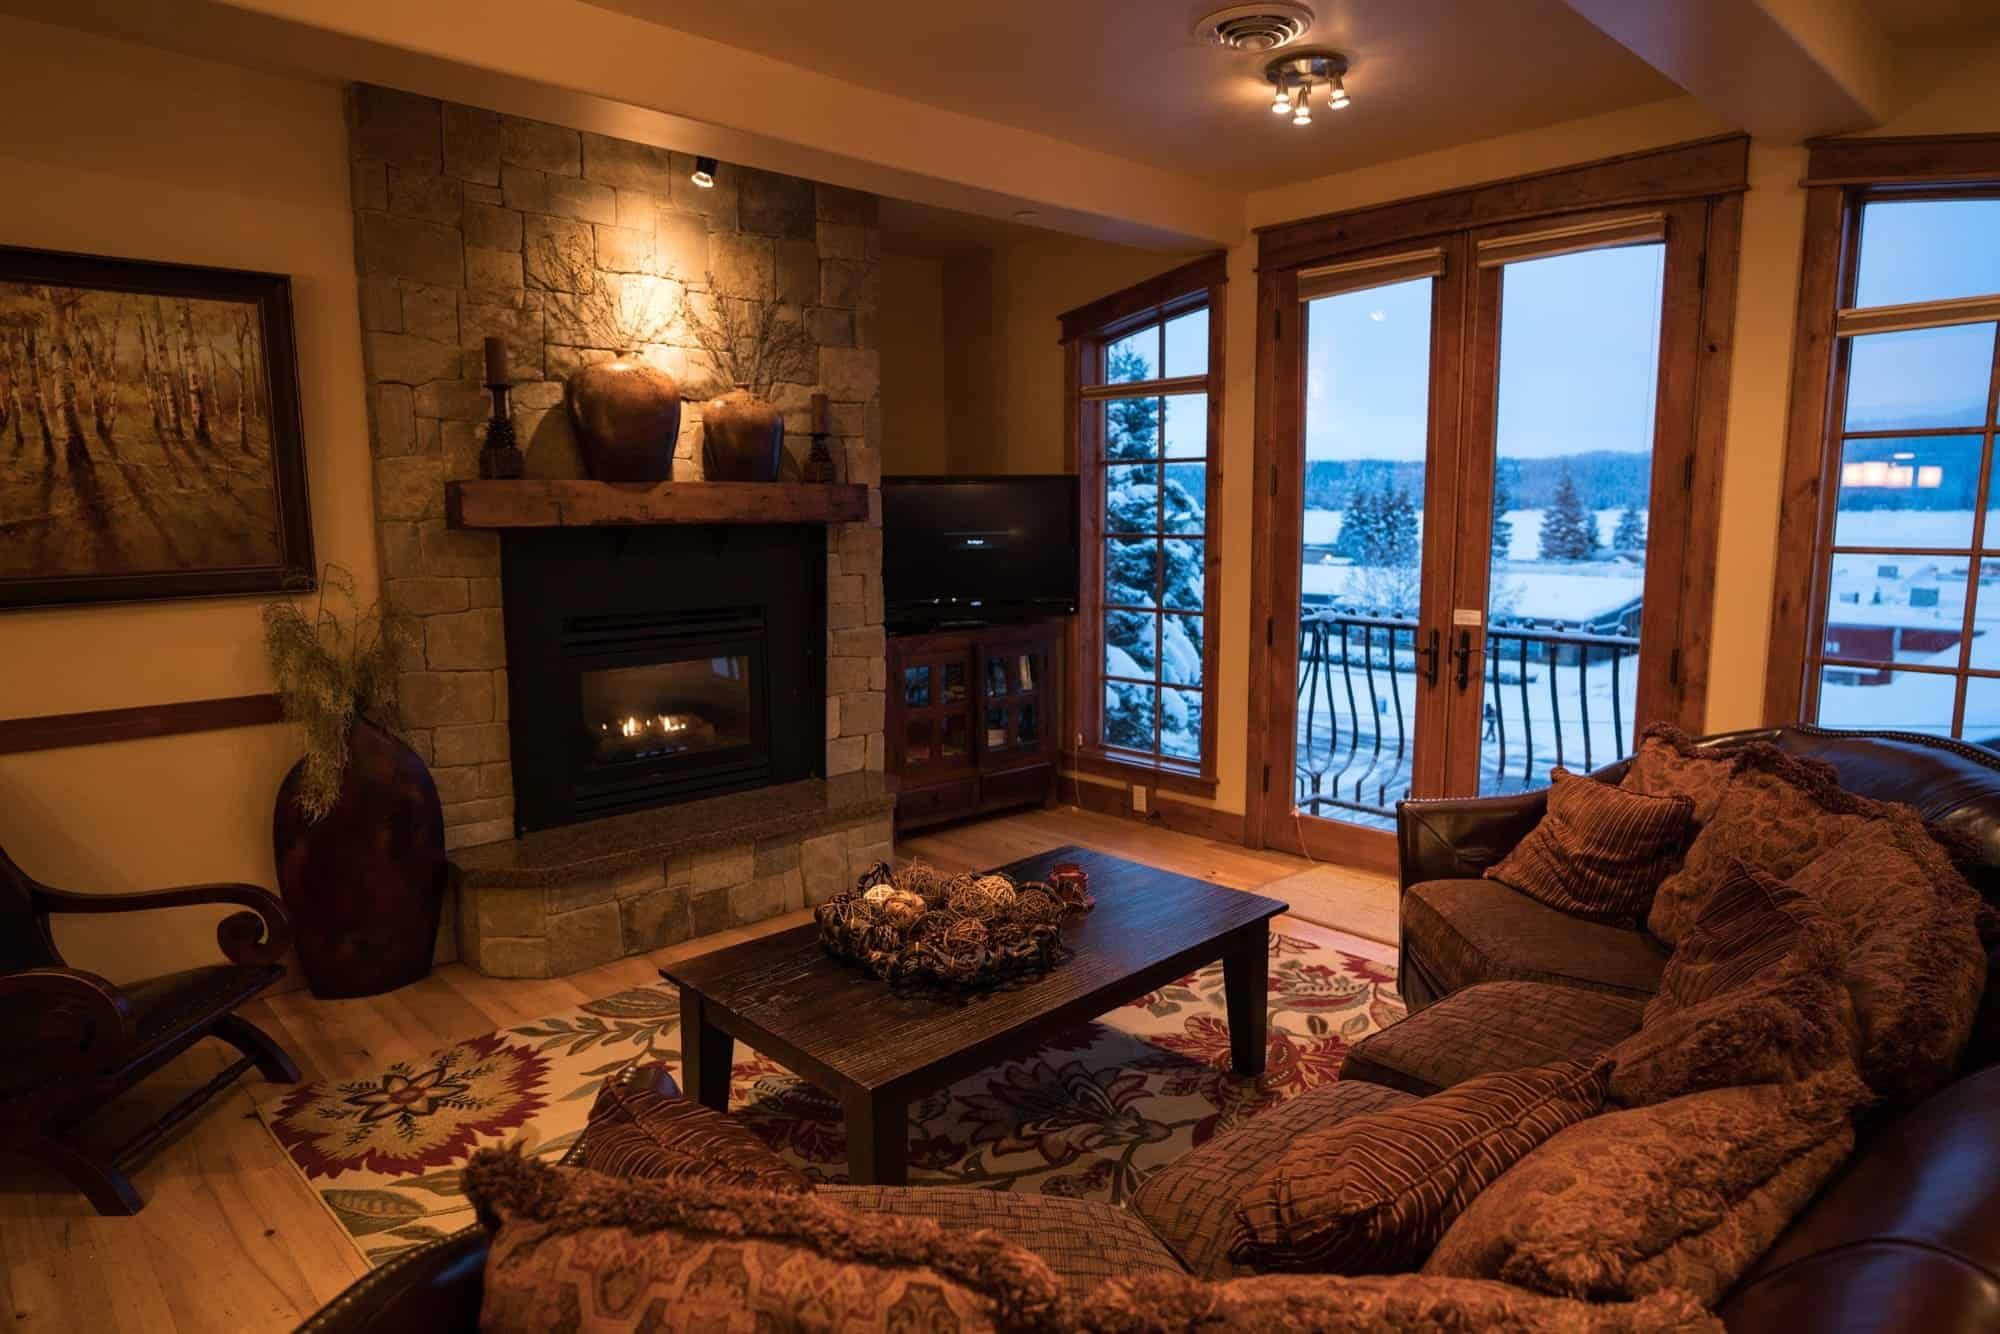 McCall is one of the best small mountain towns in the West. In this new 4-day McCall Idaho winter itinerary, we help you plan an adventurous winter vacation that includes skiing, snowmobiling, soaking in hot springs, fat biking & more.